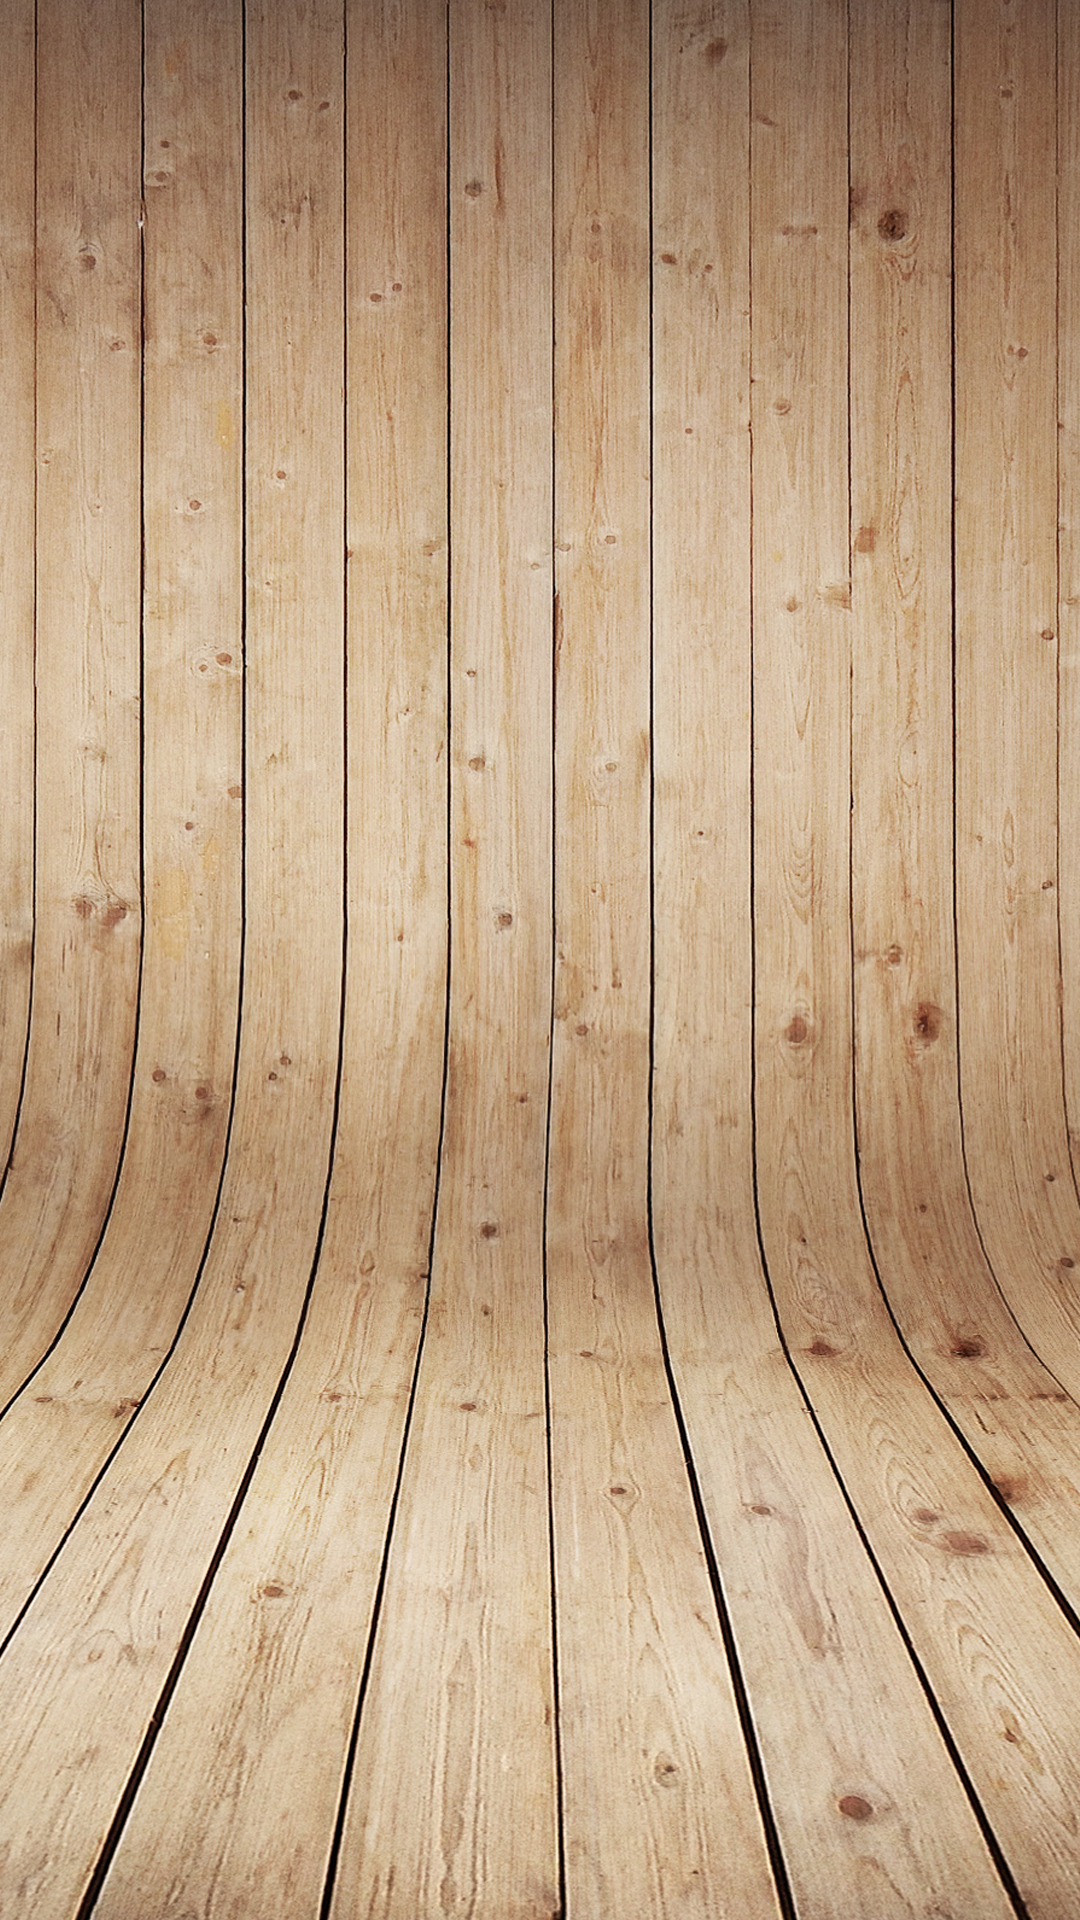 Curved Wood Phone Wallpaper